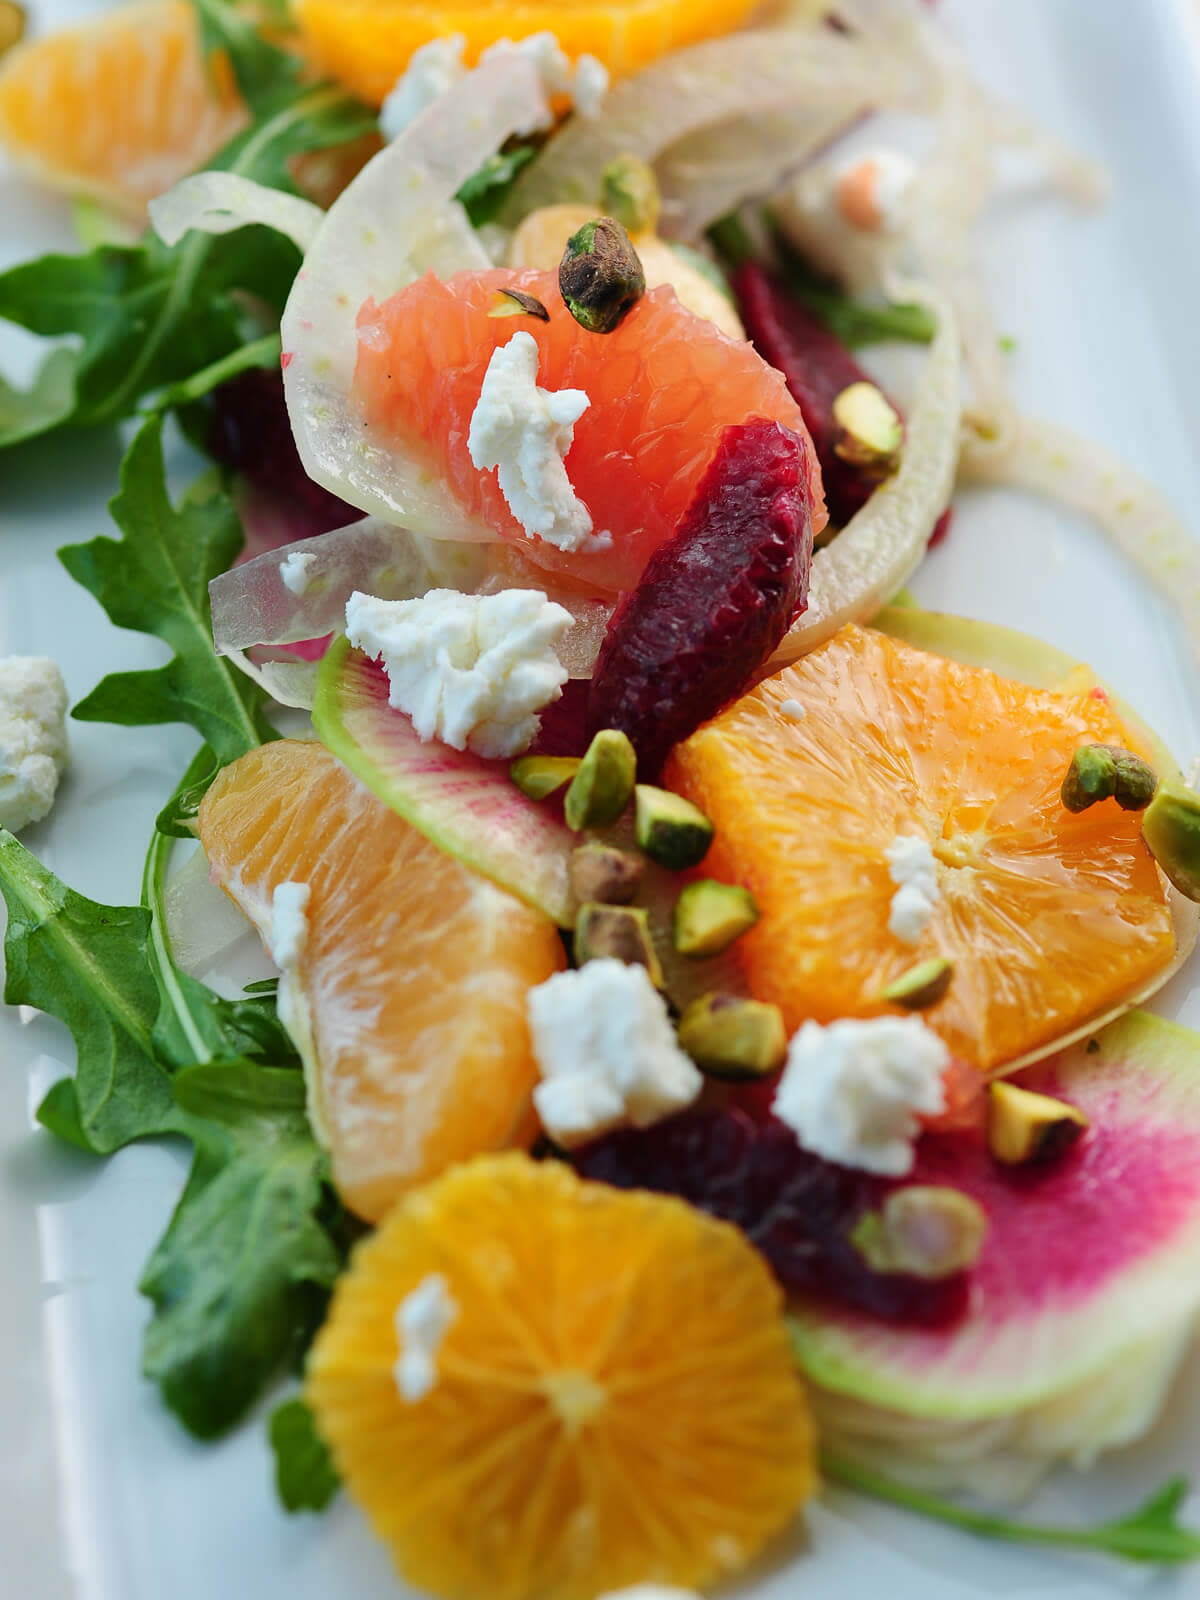 Citrus, fennel, radish and beet salad